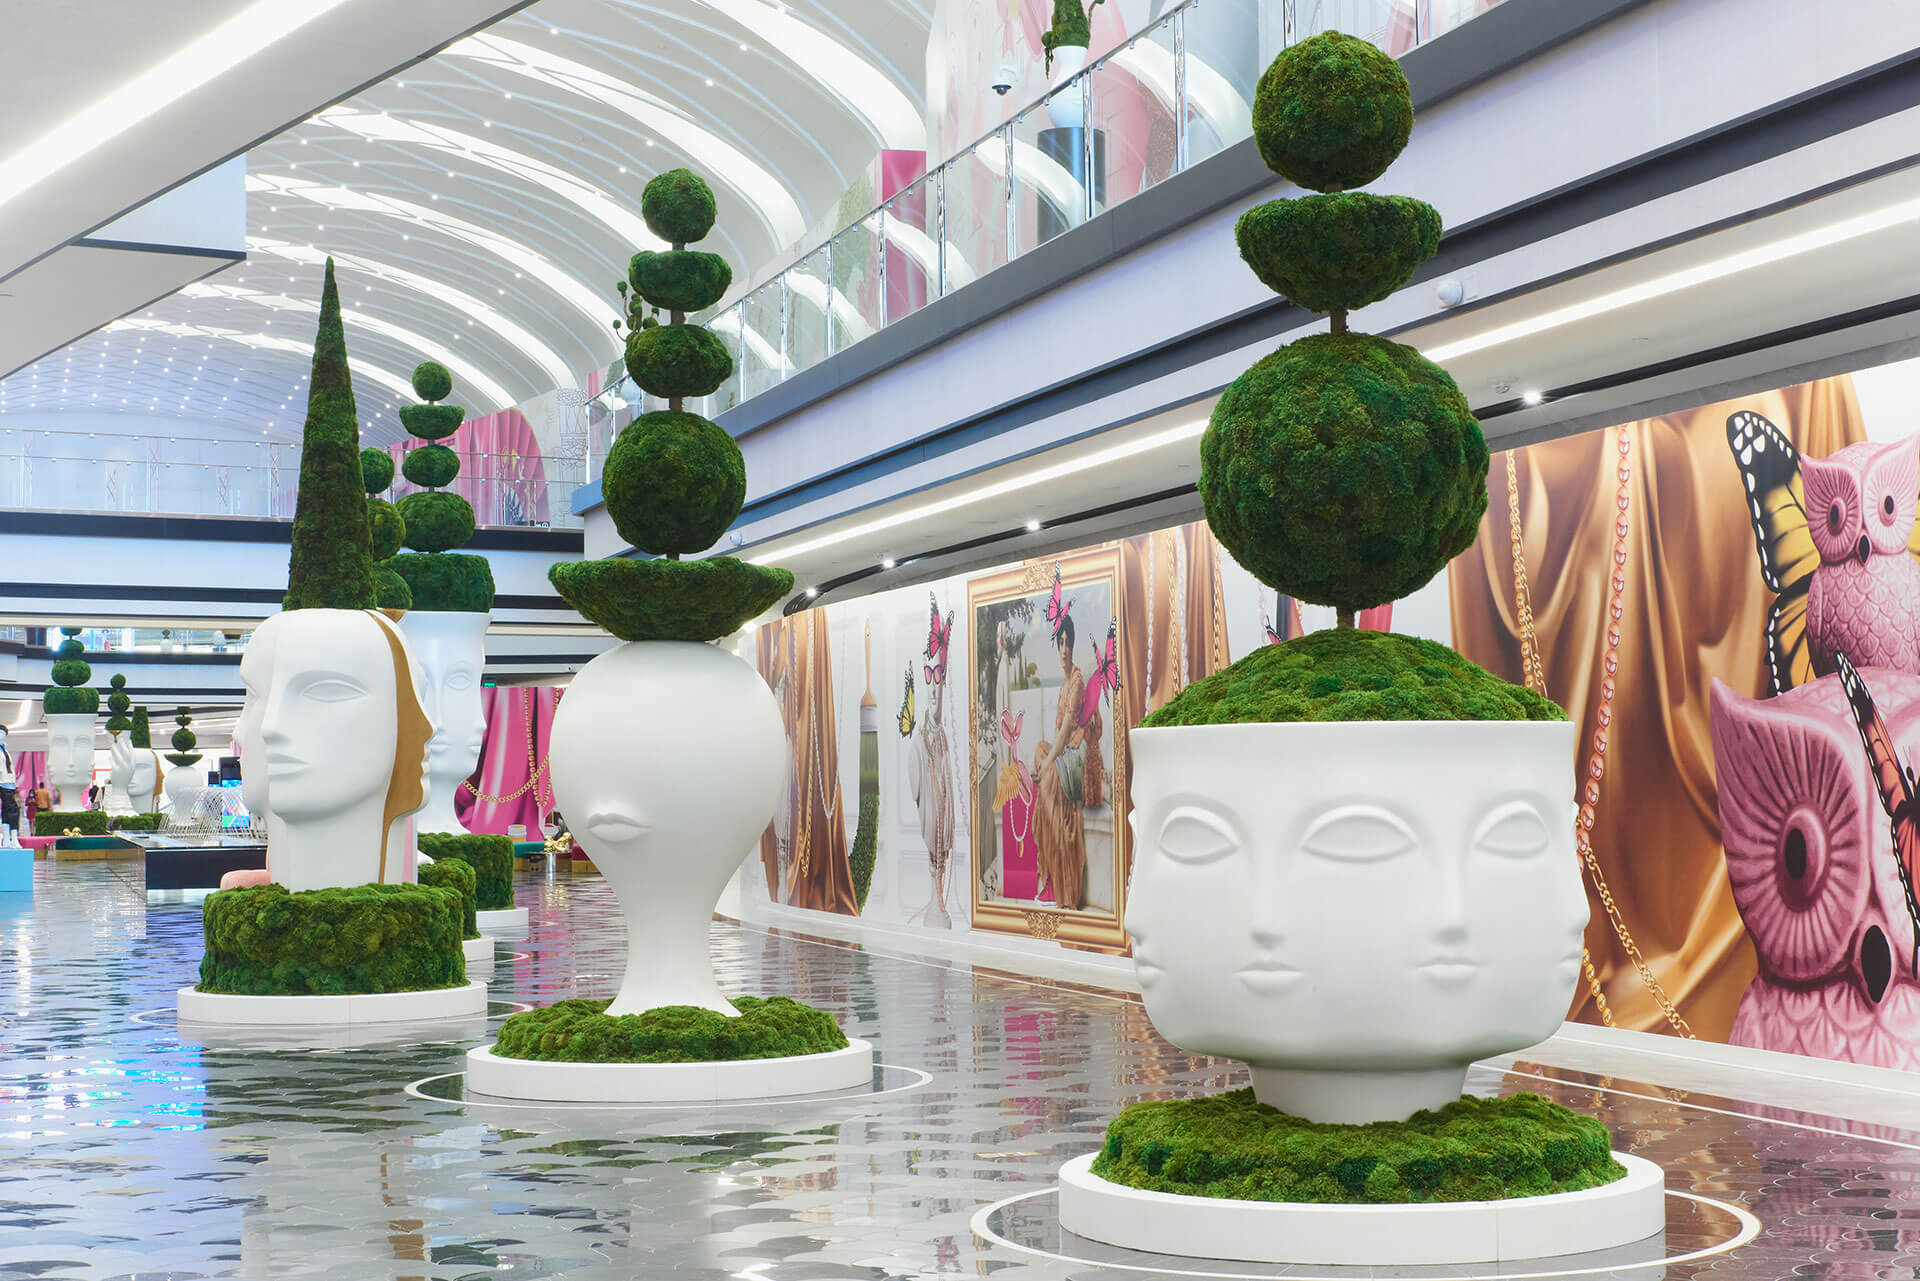 Moss mural in New York